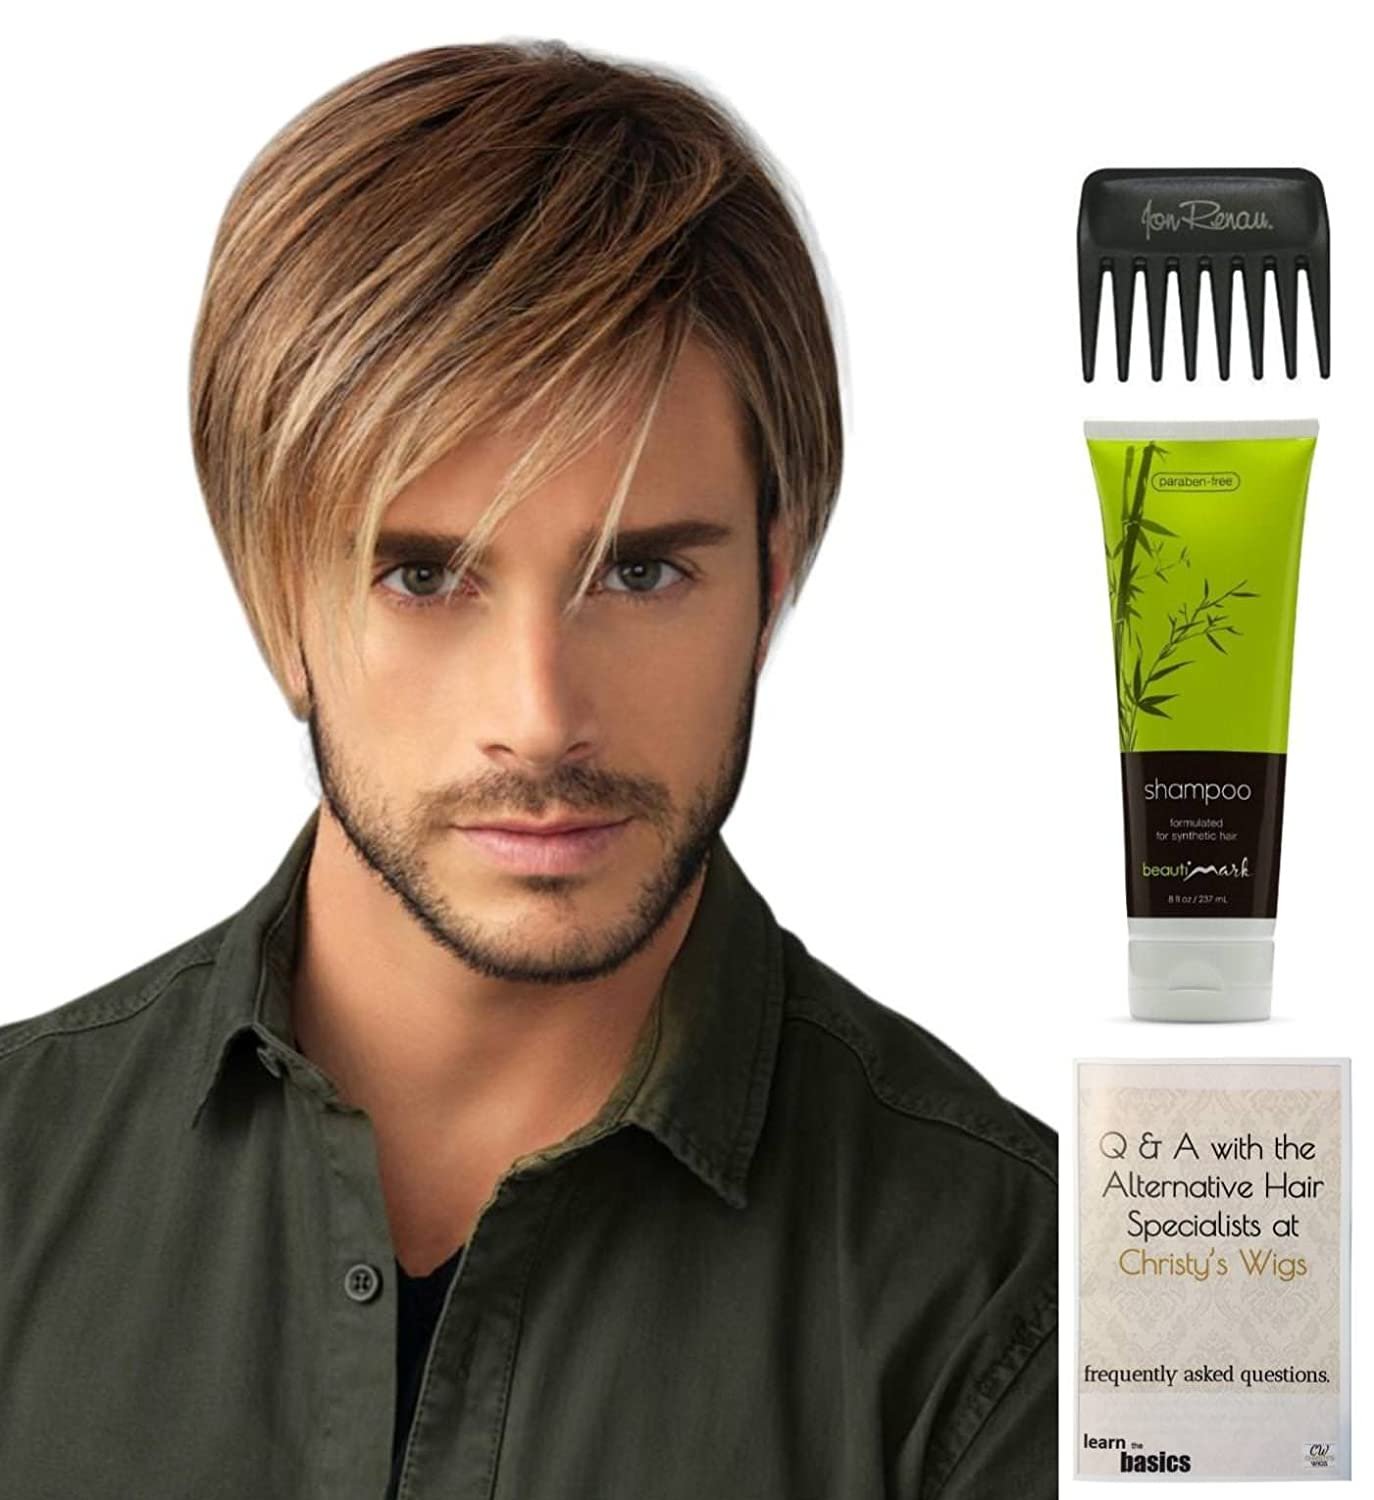 B07DV86Z7W Bundle - 4 items: Chiseled Wig by HIM, Christy\'s Wigs Q & A Booklet, BeautiMark Synthetic Shampoo & Wide Tooth Comb - Color: M1S 71Lbs9YlbPL._SL1500_